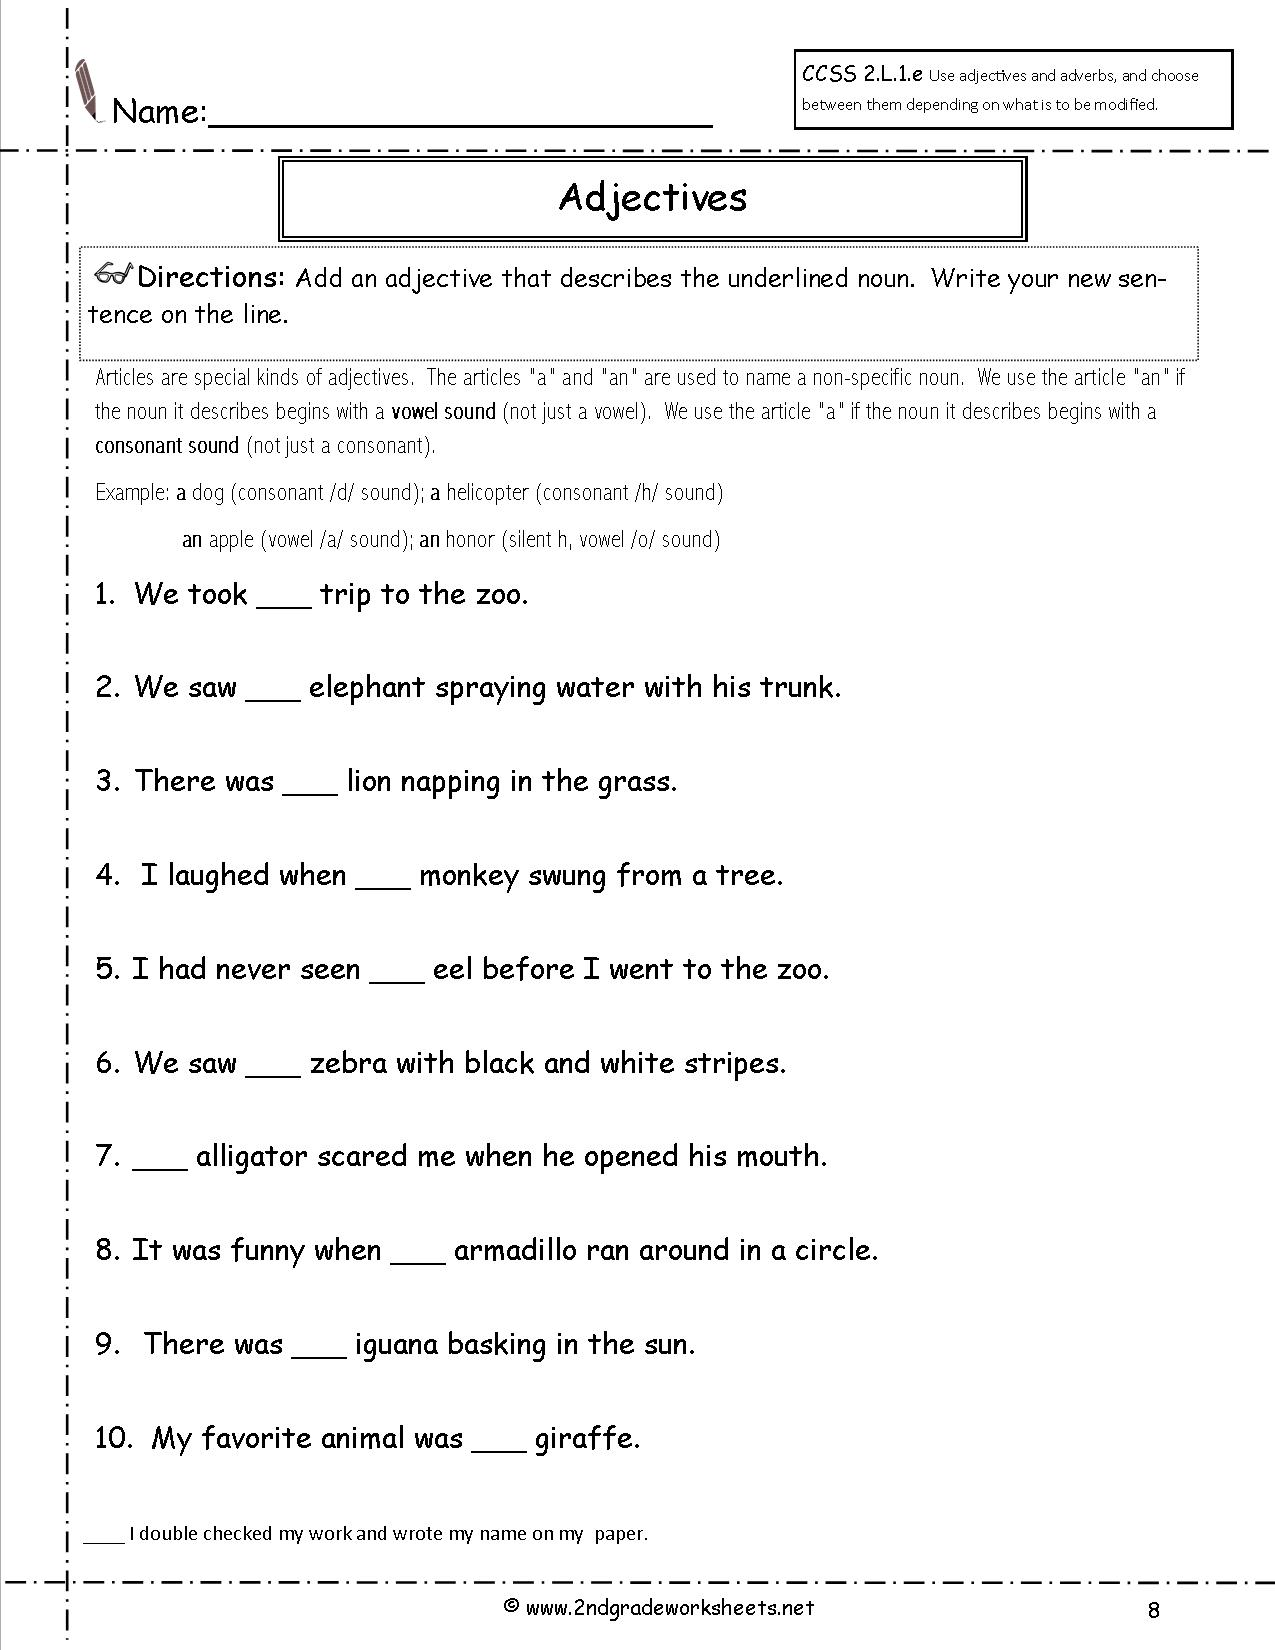 13 Best Images Of Printable Practice Writing Sentences Worksheets